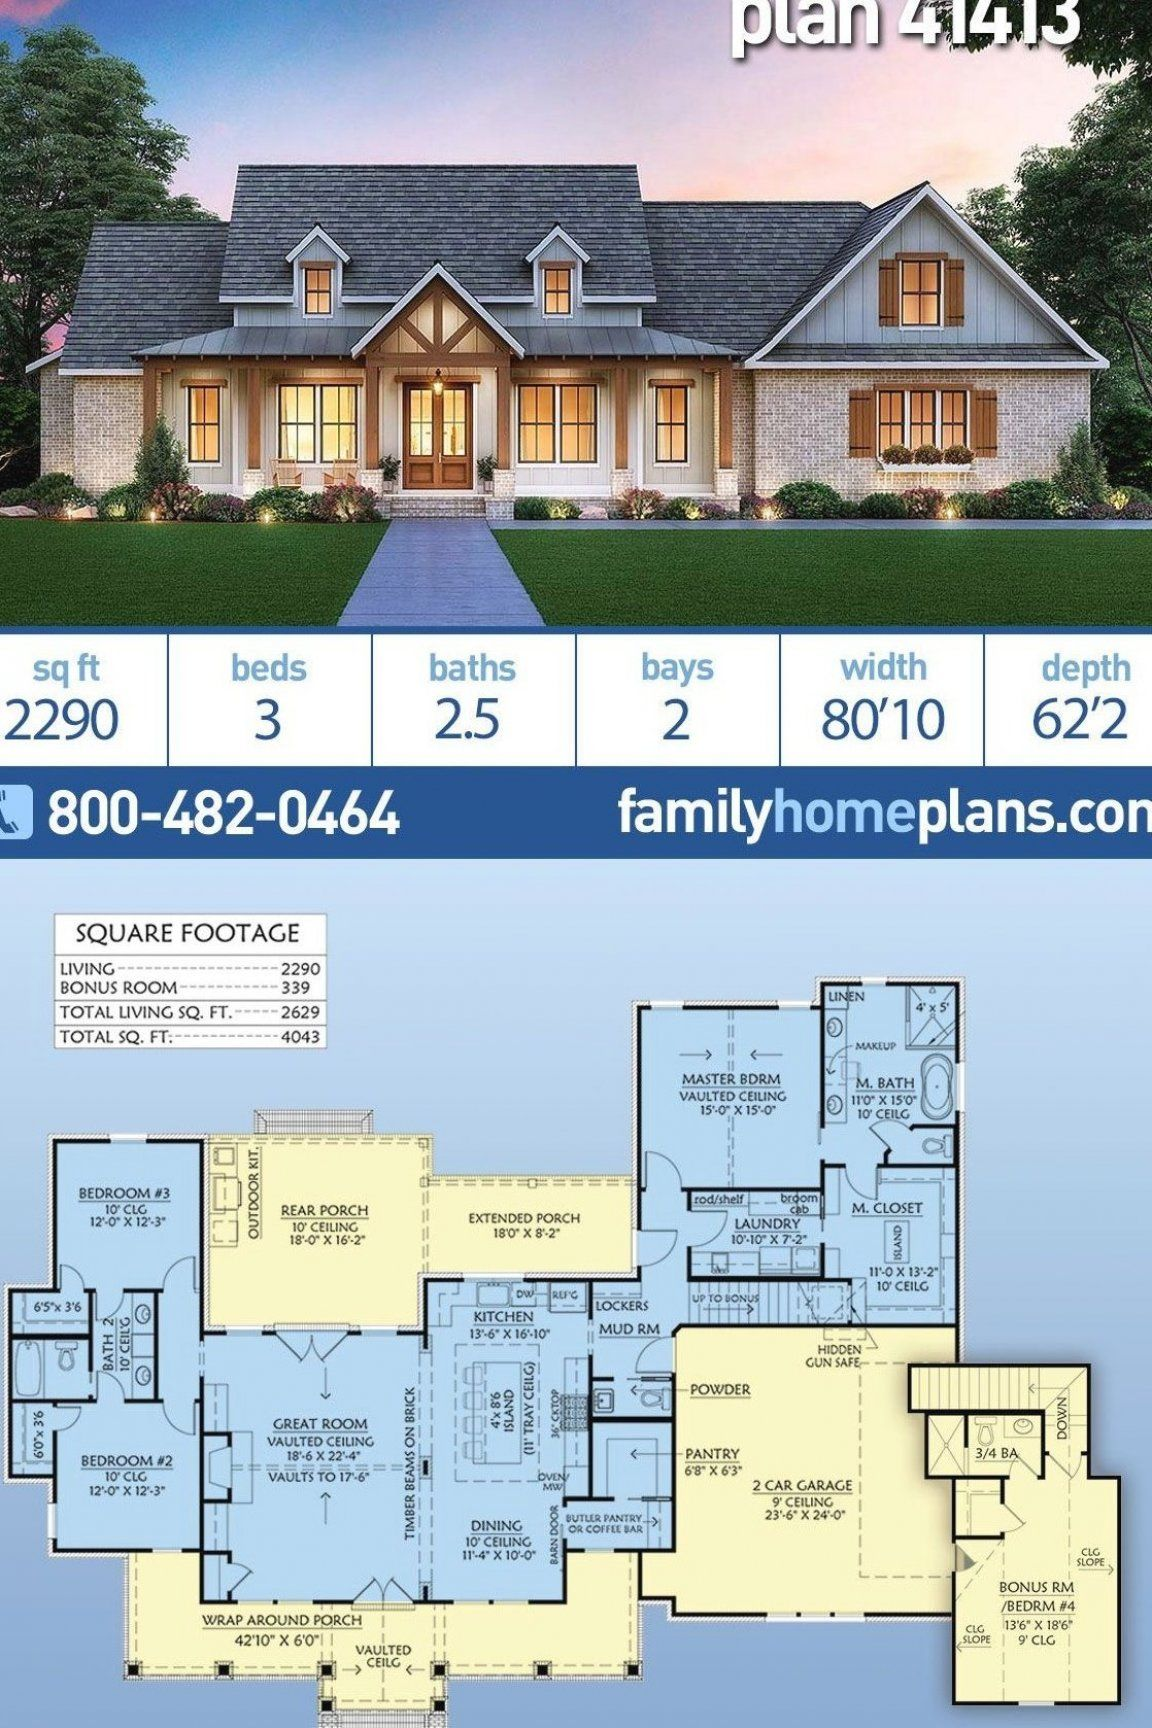 Elegant Farmhouse Home Plan With Just Almost 2300 Square Feet Of Heated Living Space A Three Bedro In 2020 Country Living Design House Plans Farmhouse Farmhouse Homes